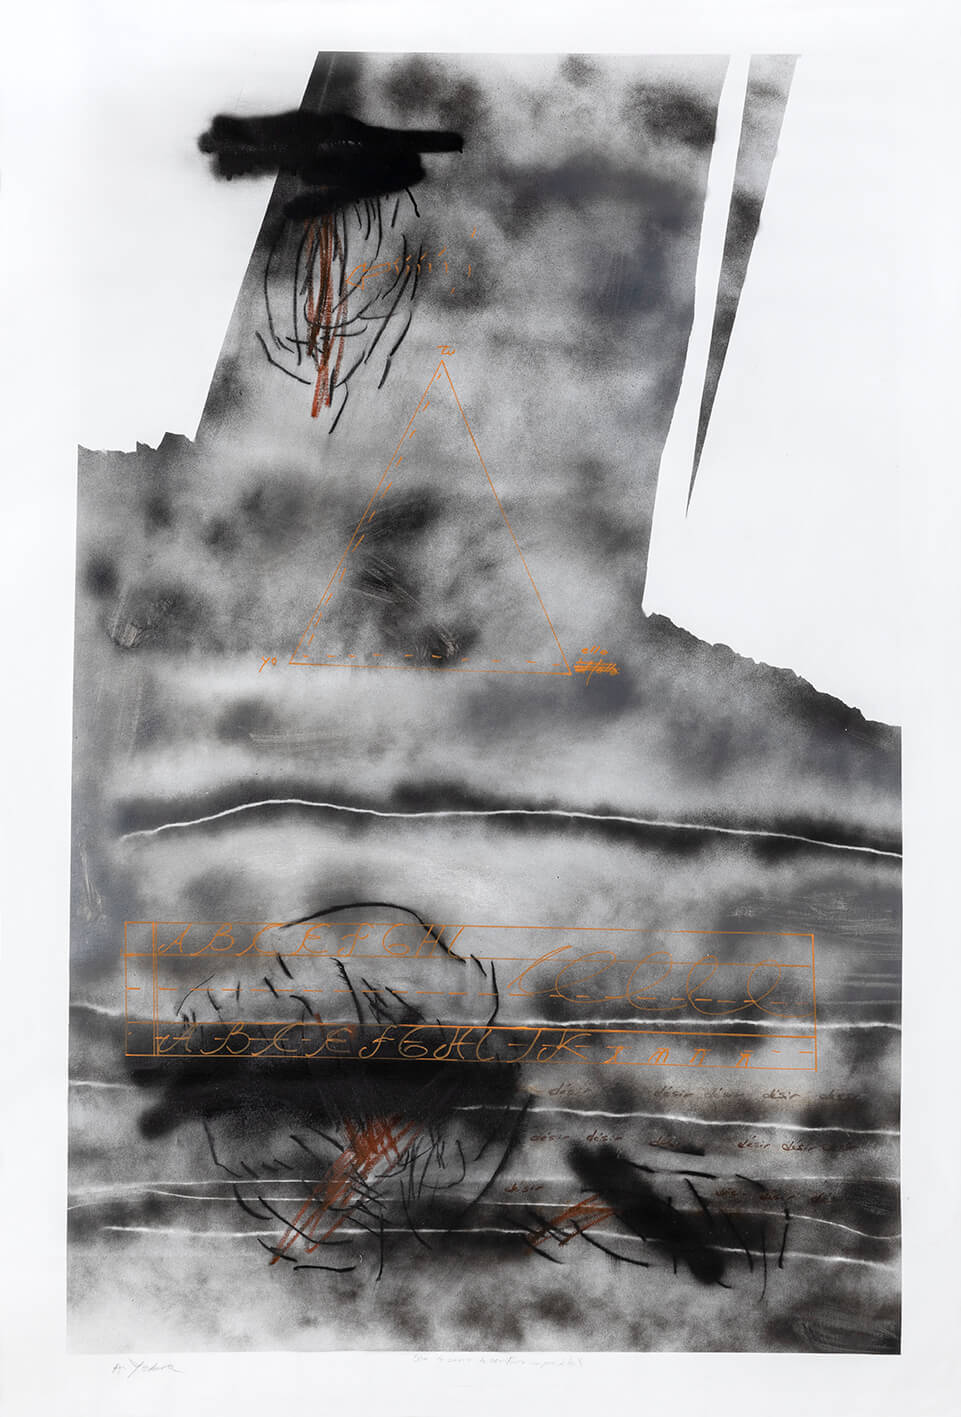 Untitled, acrylic, spray, charcoal, pastels and coloured ink on canvas, 63 x 82.63 inch.